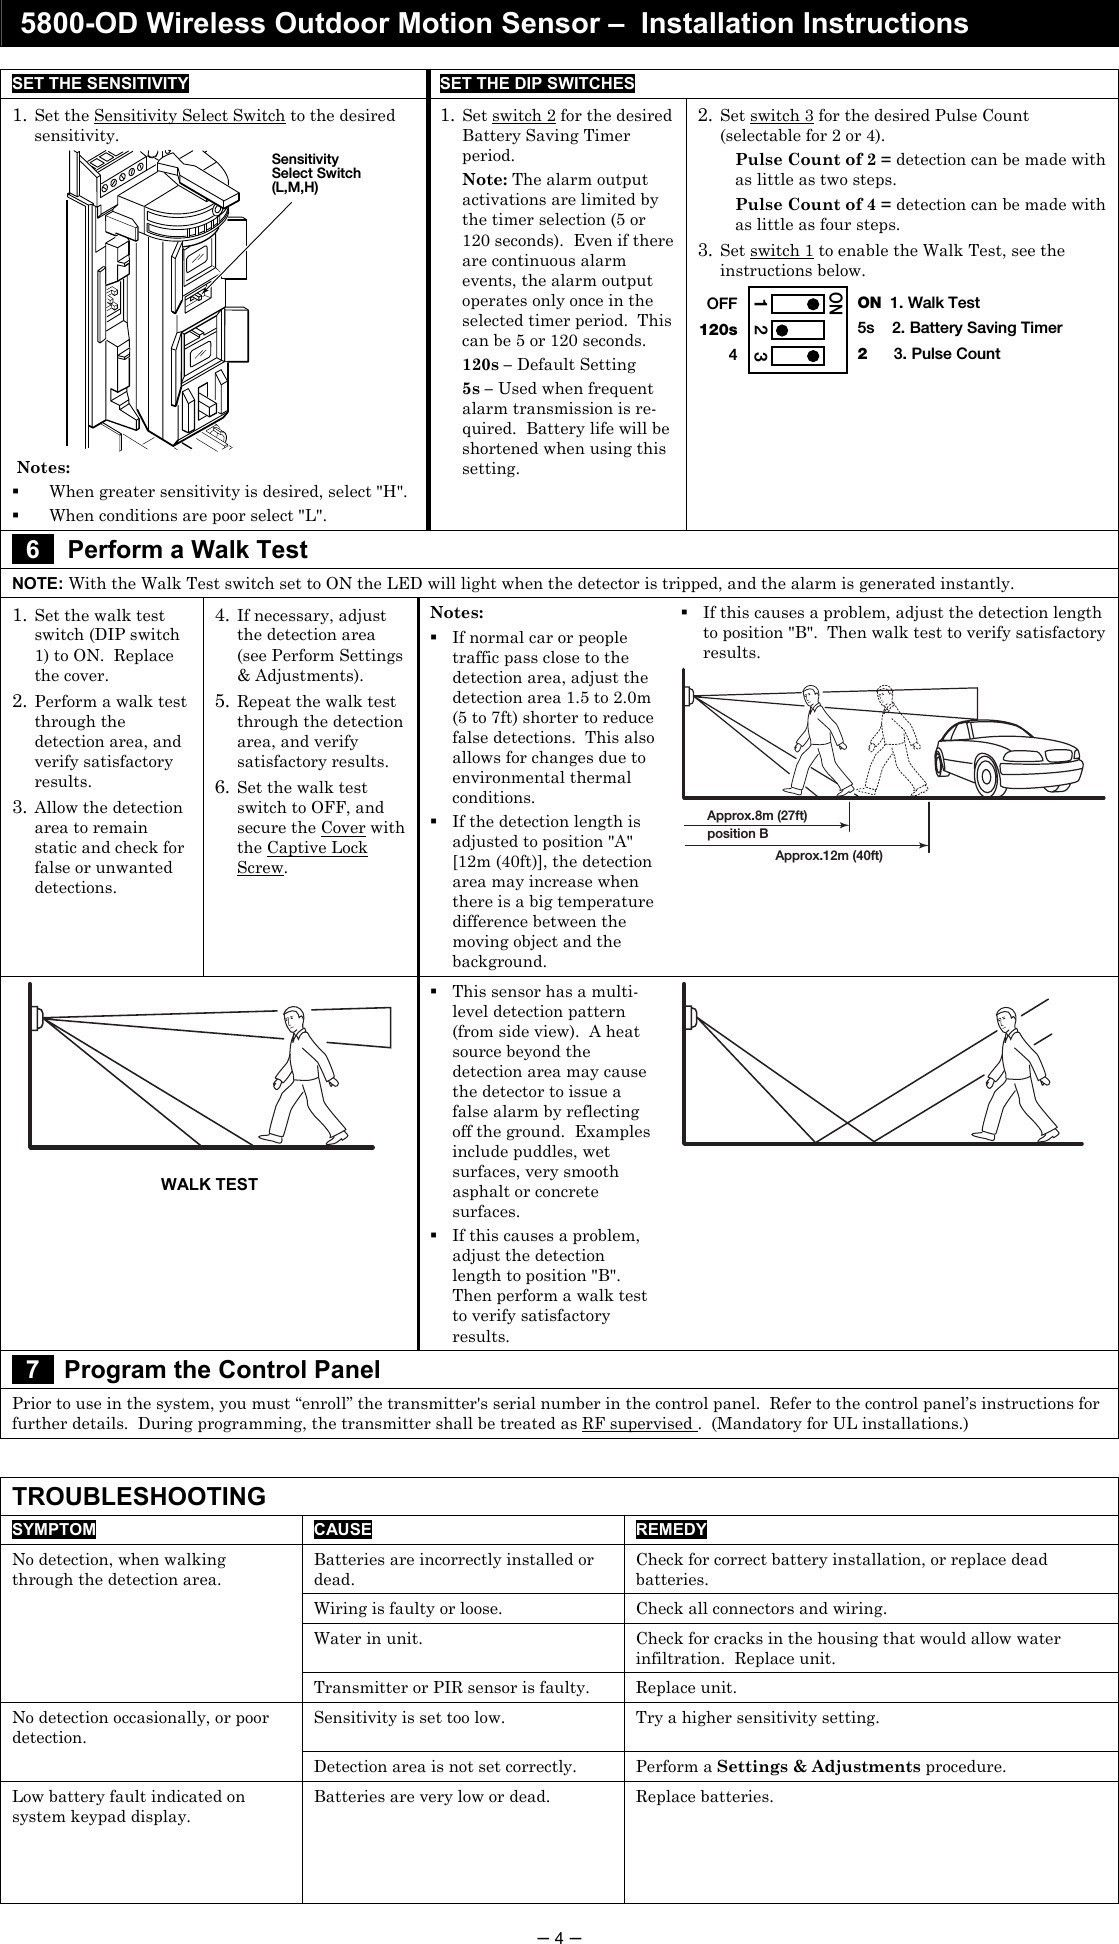 New 2002 Dodge Ram 1500 Alarm Wiring Diagram  Diagram  Diagramsample  Diagramformat